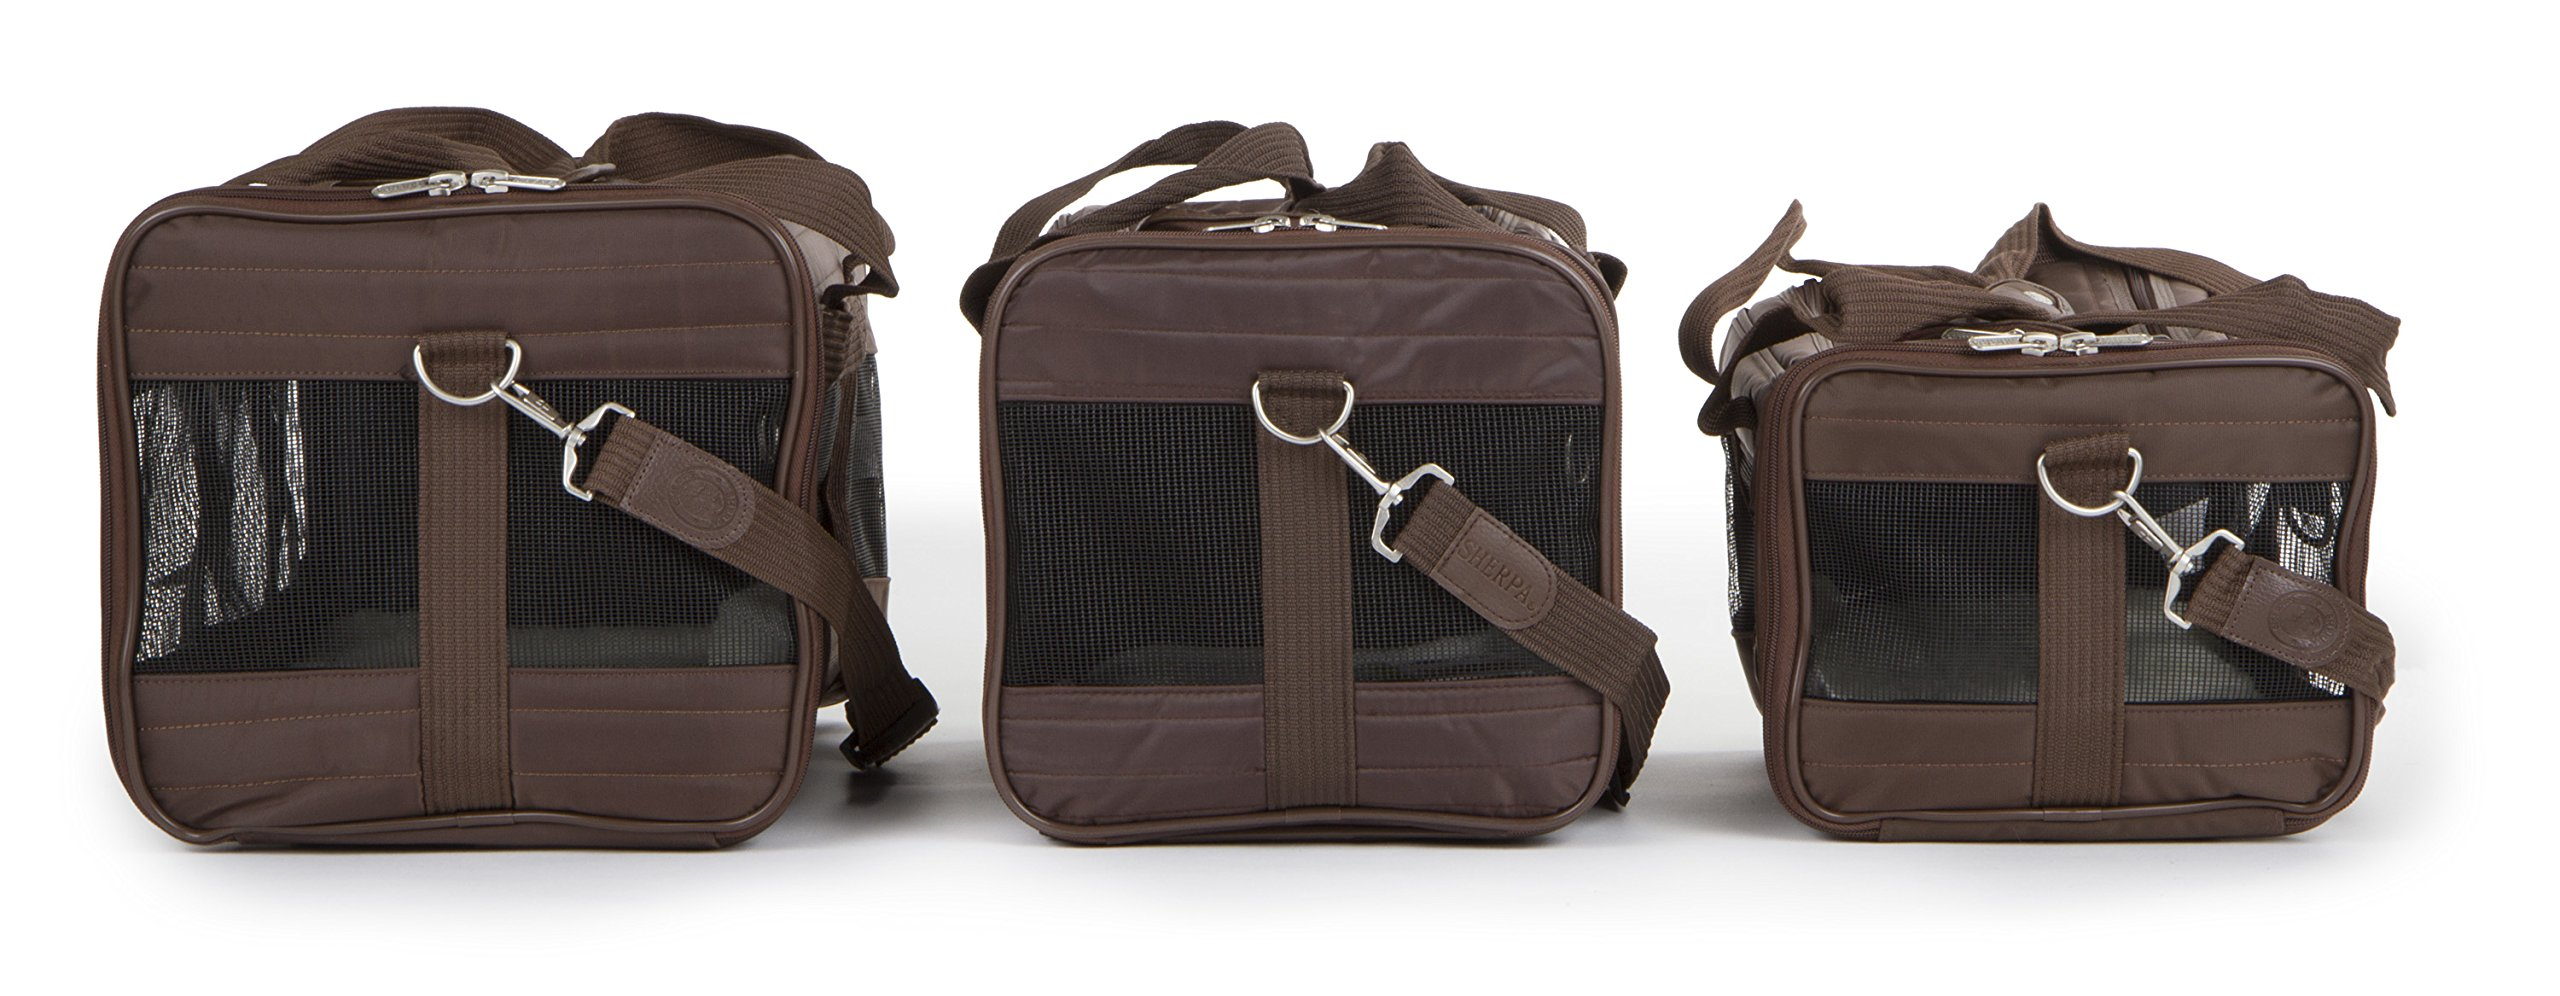 Sherpa Travel Original Deluxe Airline Approved Pet Carrier Small, Brown by Sherpa (Image #7)